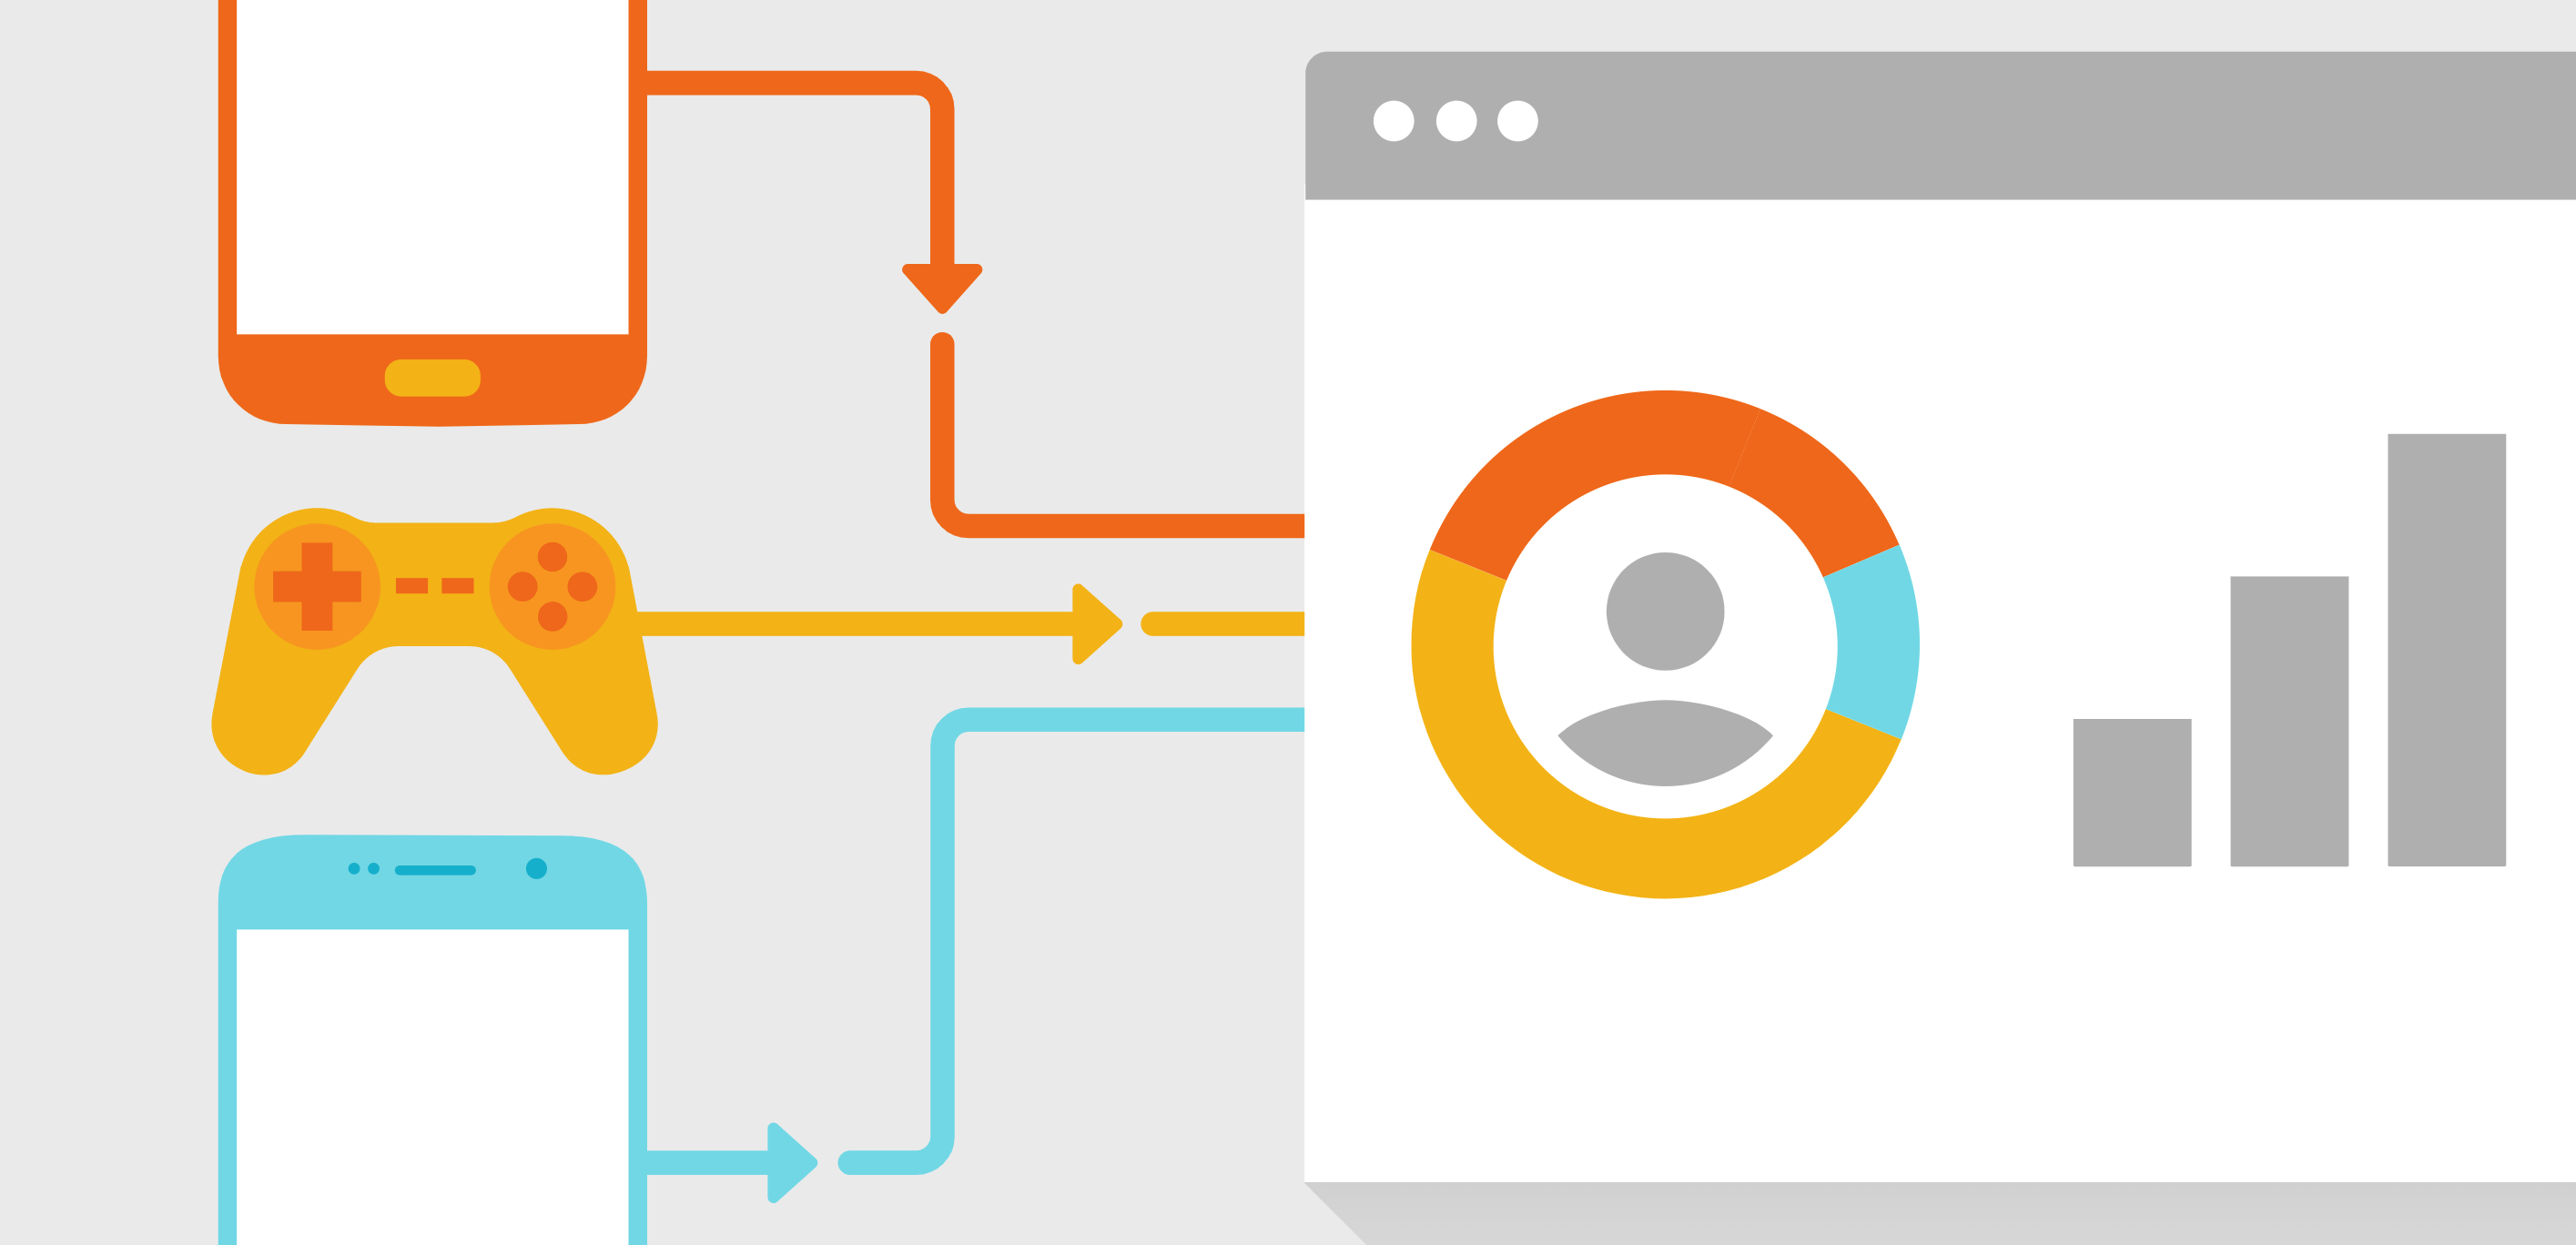 Google Analytics lets you measure user interaction with websites or web apps.